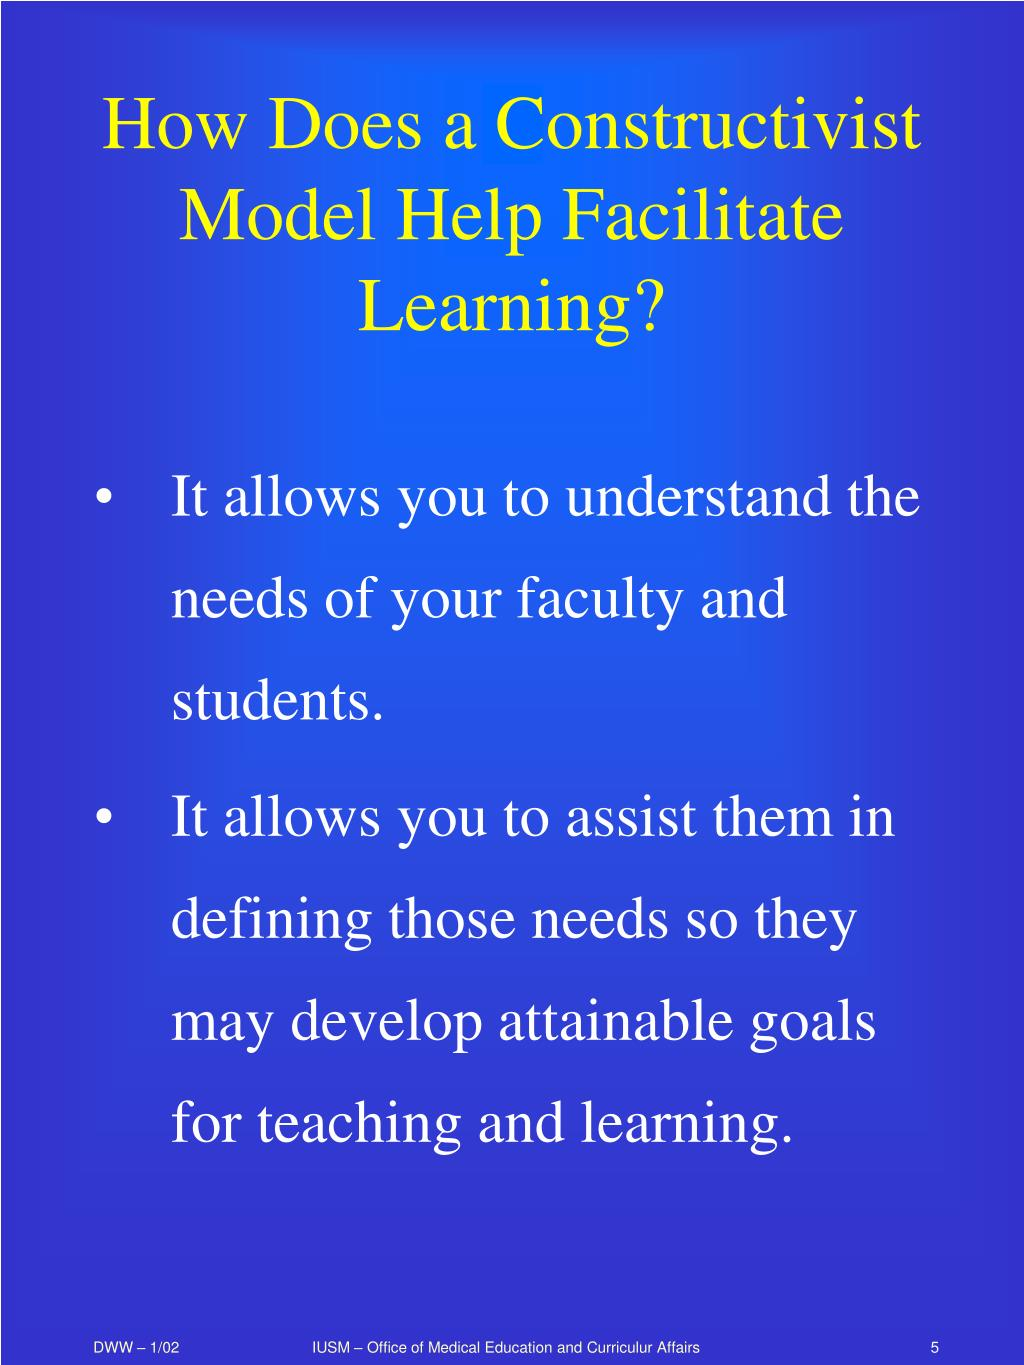 How Does a Constructivist Model Help Facilitate Learning?